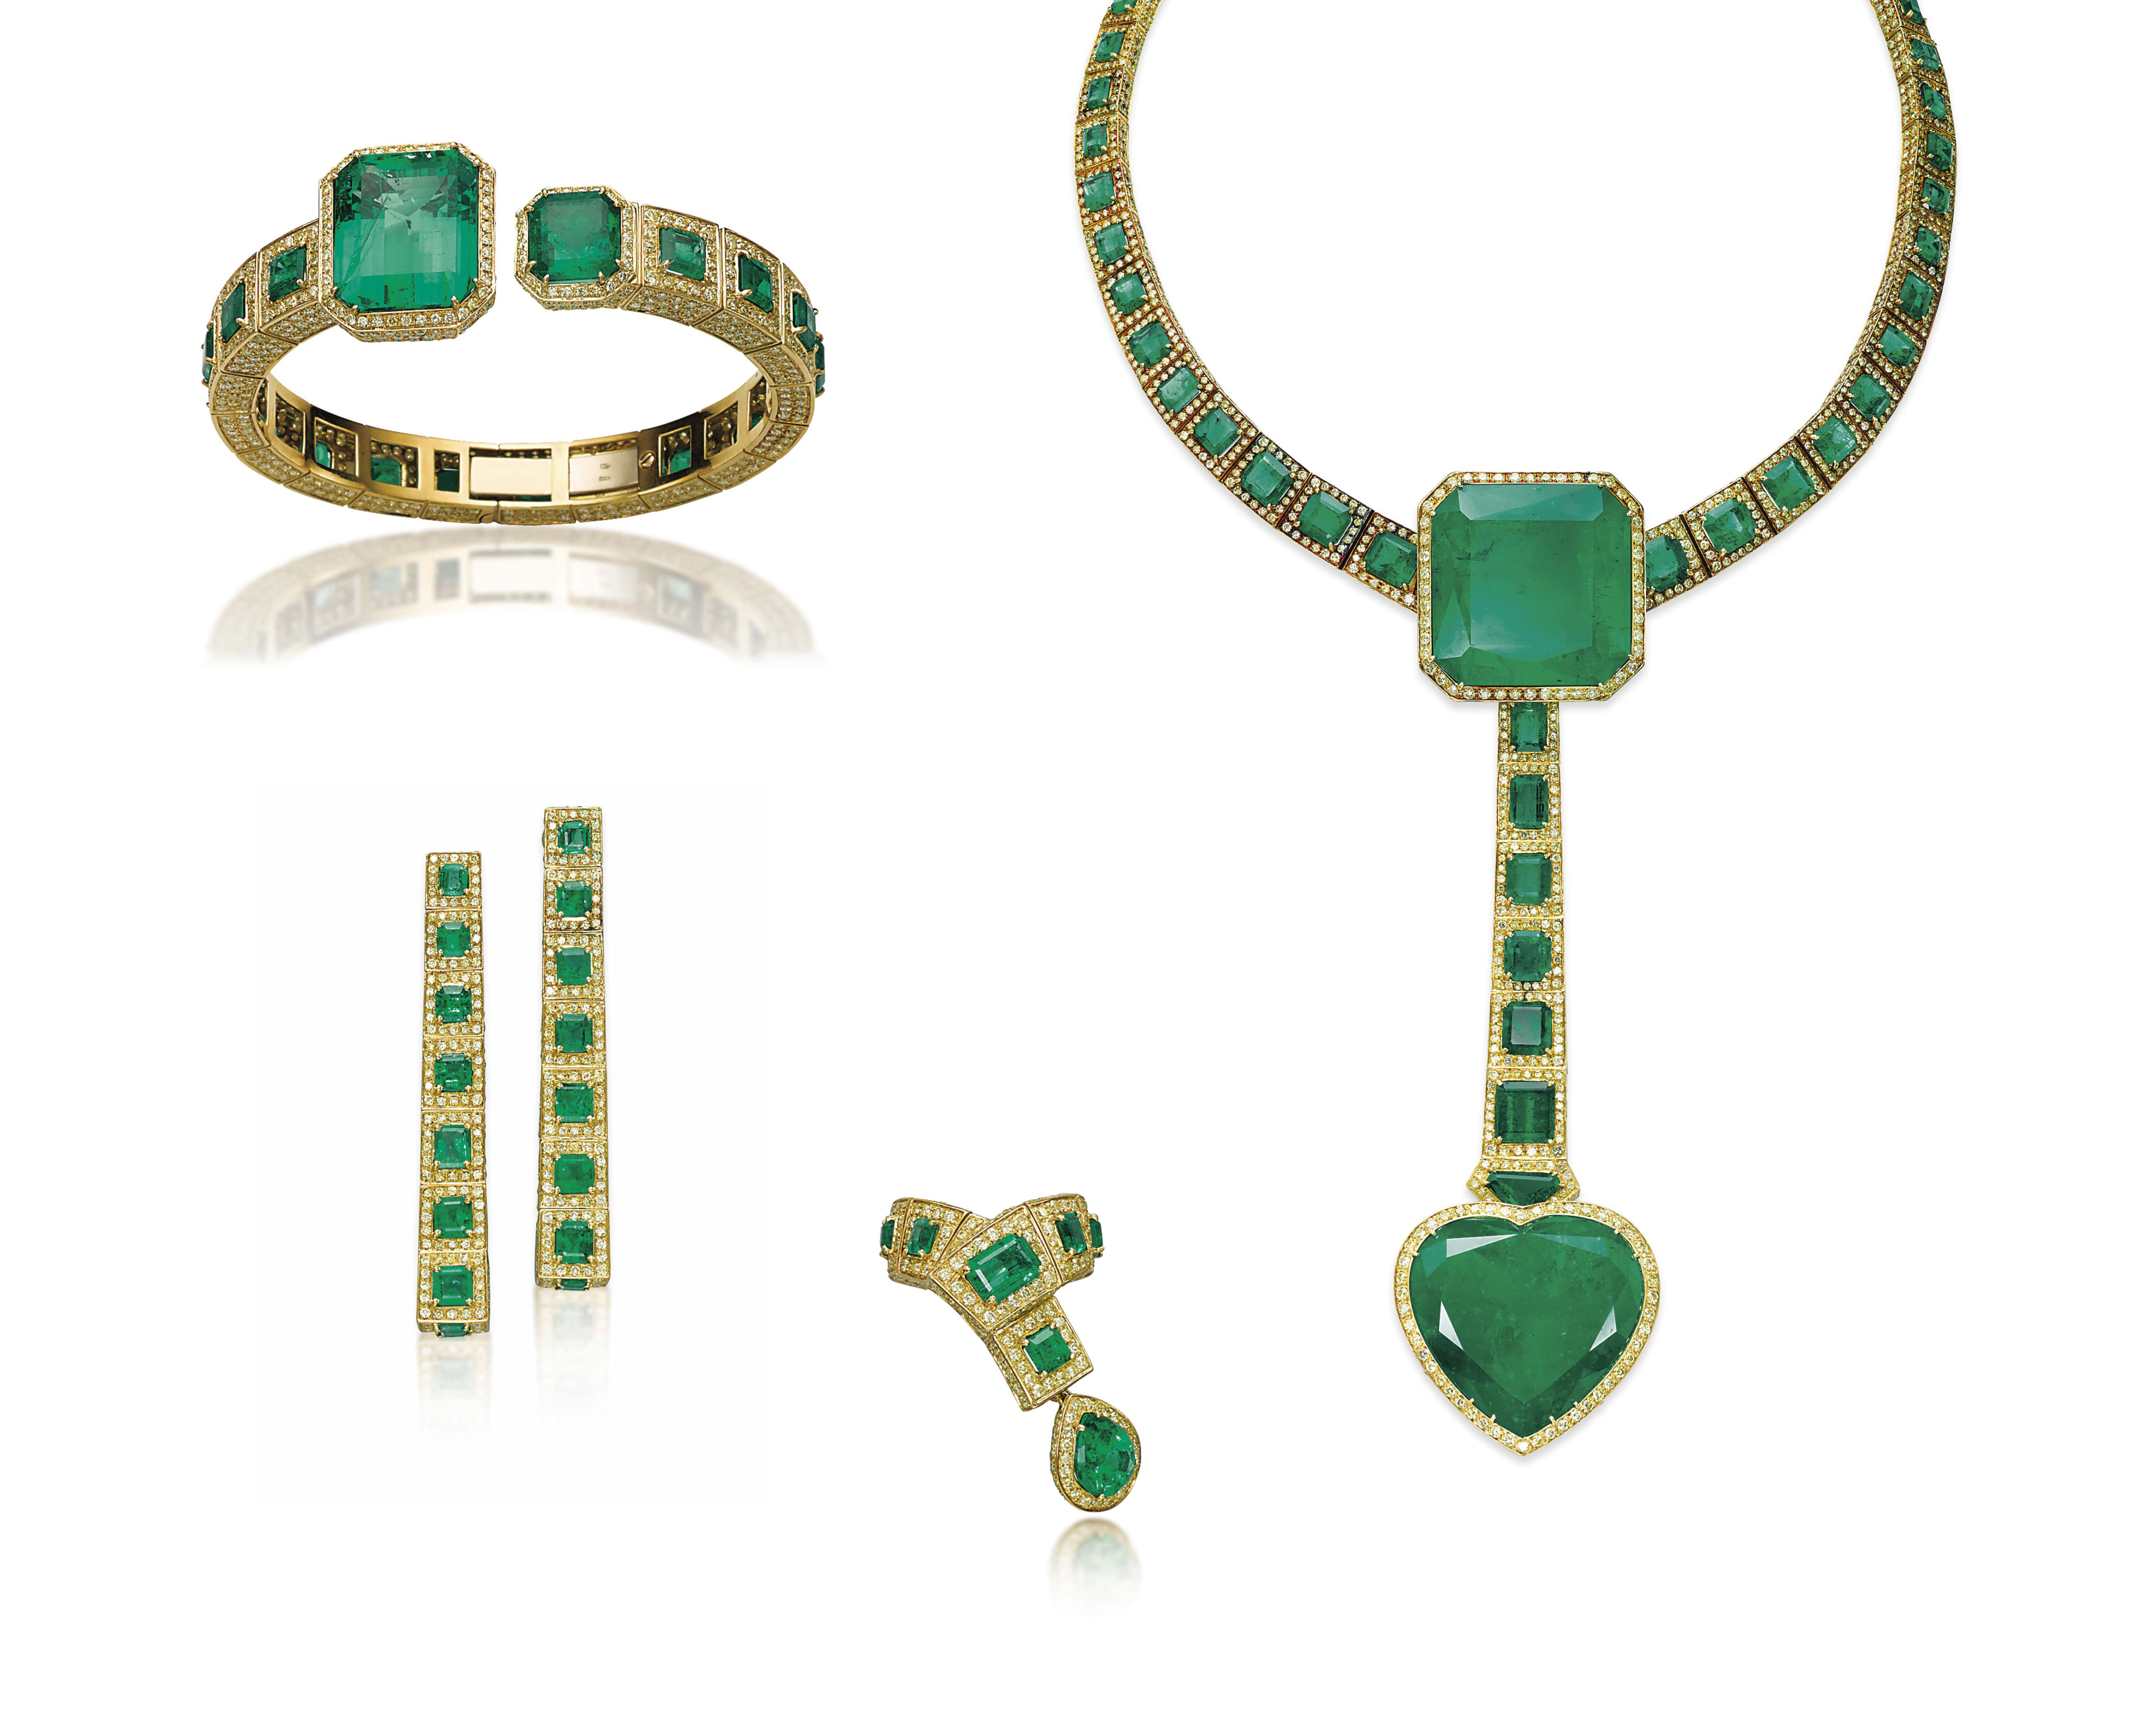 A SUITE OF EMERALD AND COLOURE